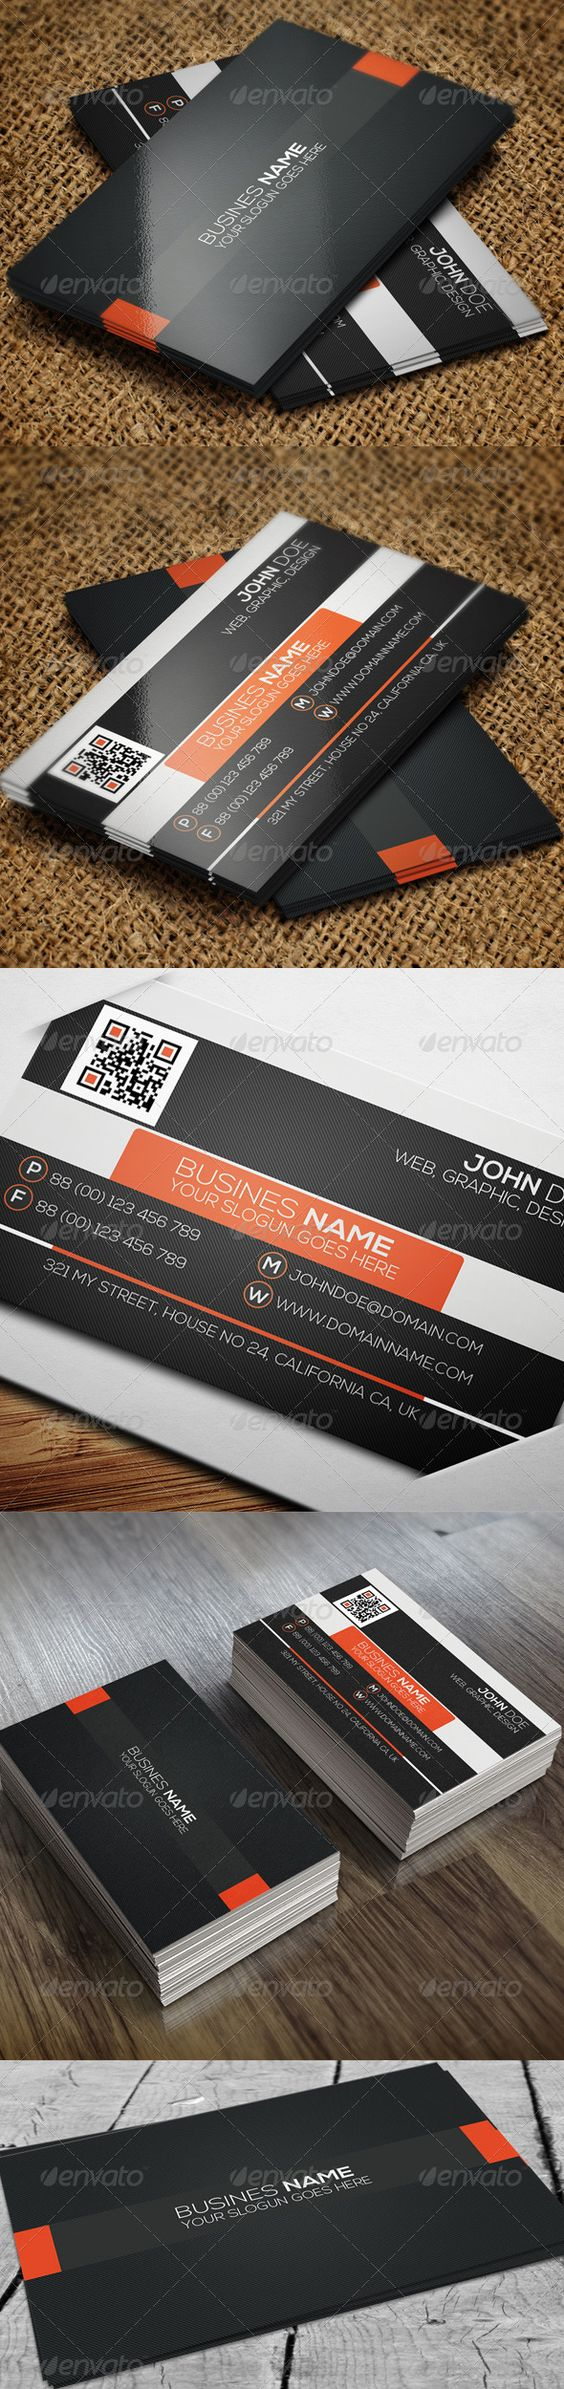 Corporate Business Card PSD Print Templates| Print Ready | Buy and Download: http://graphicriver.net/item/corporate-business-card/7272906?WT.ac=category_thumbWT.z_author=sadhonbiswasref=ksioks